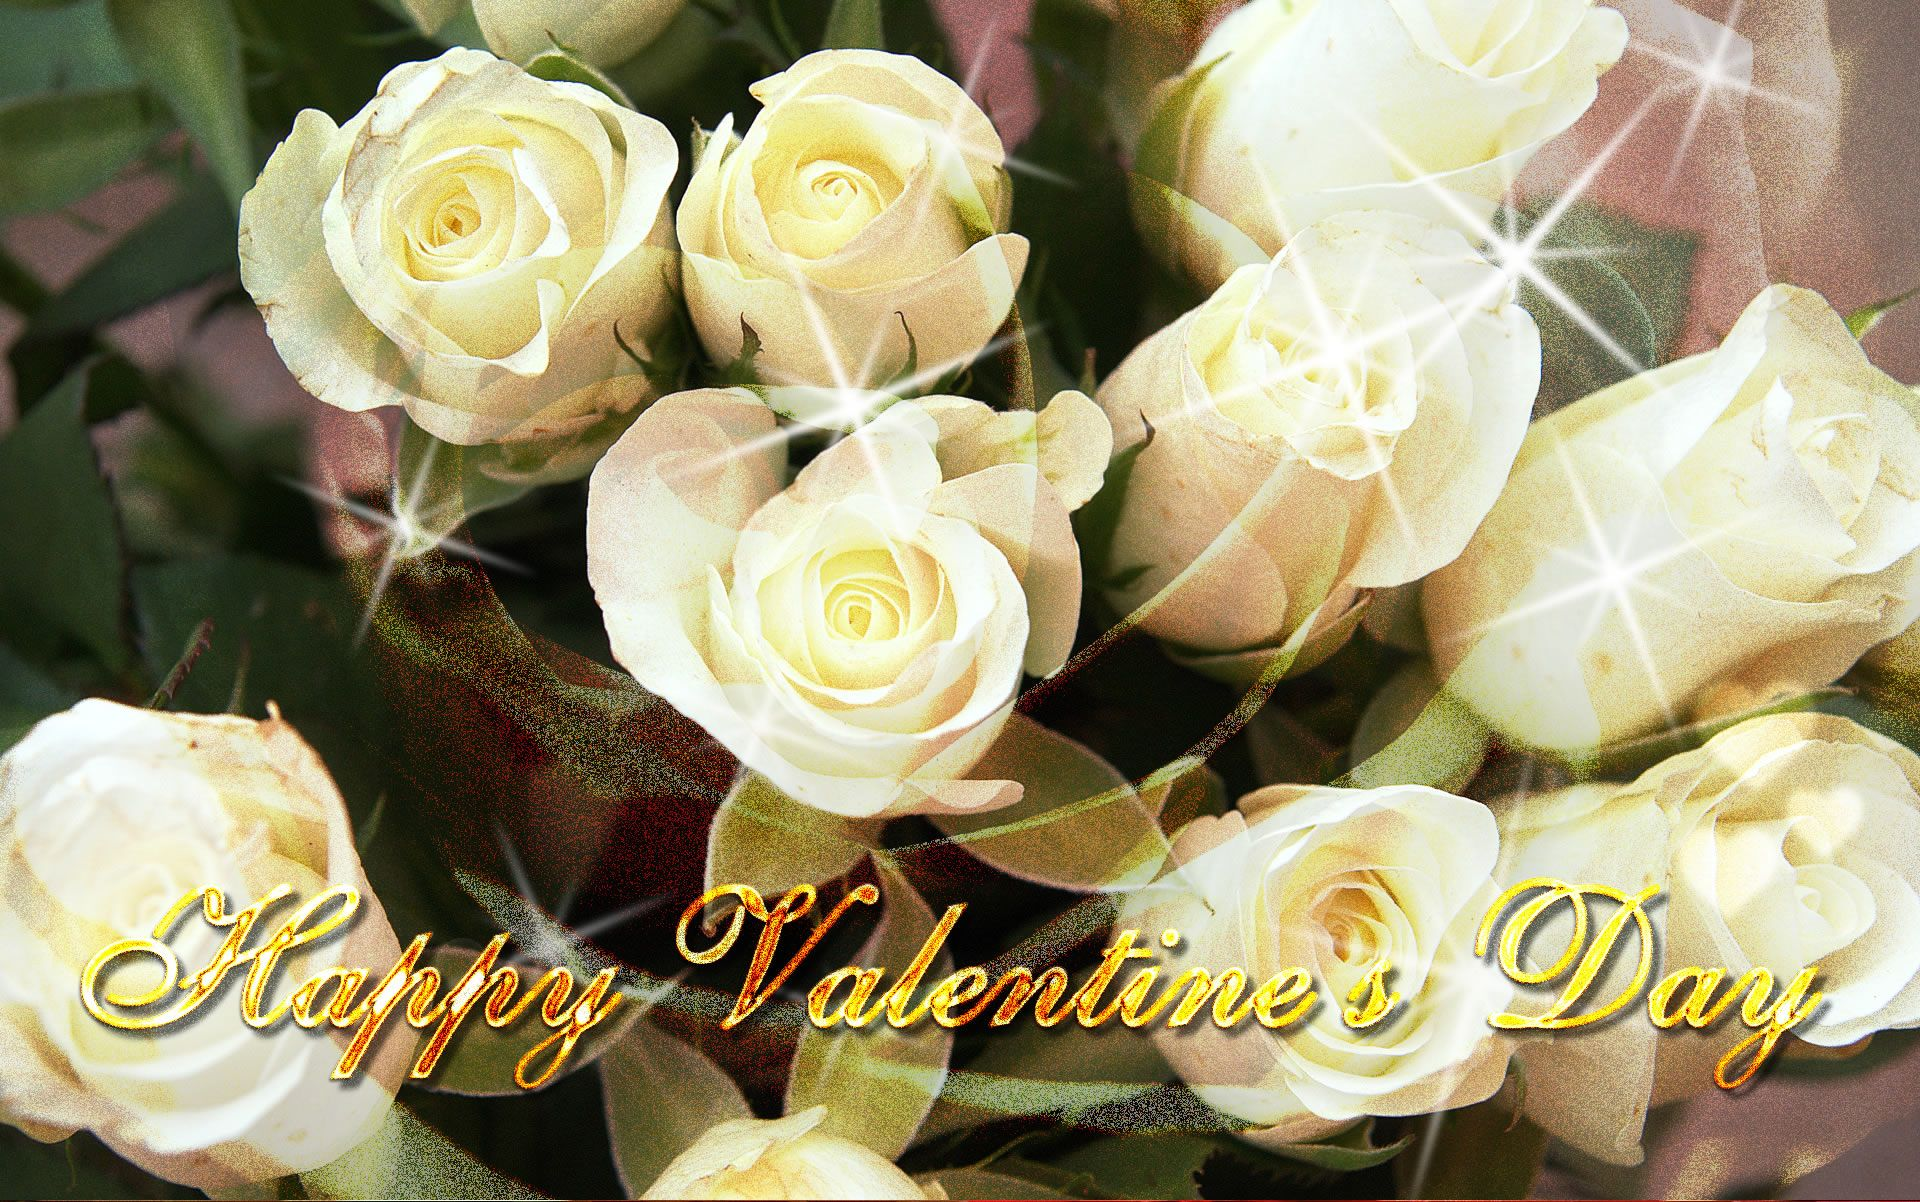 Happy valentines day love kiss red candy flowers heart chocolate happy valentines day love kiss red candy flowers heart chocolate roses romance valentines day cherries cupid izmirmasajfo Images